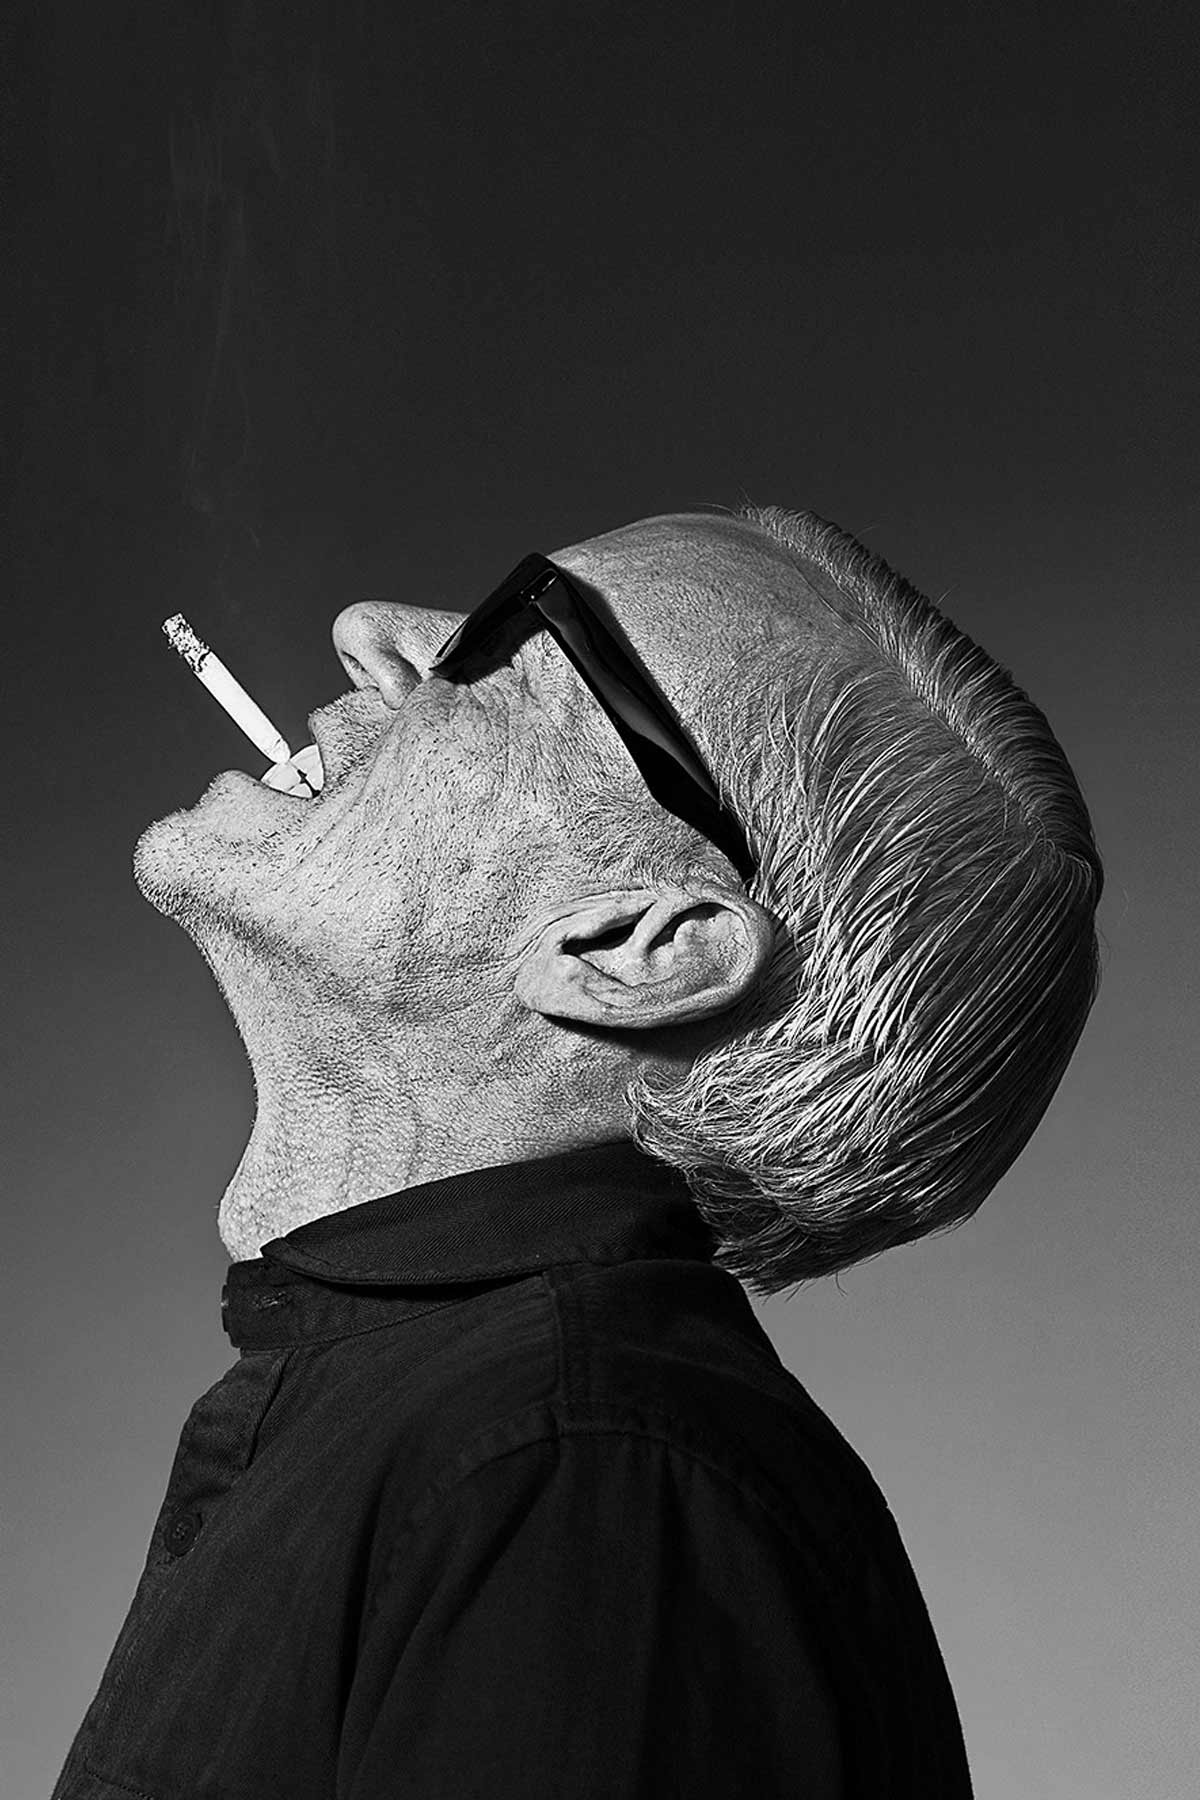 Black and white portrait of mature man with sunglasses and a cigarette. A unique fashion image for Han Kjøbenhavn, who sells apparel for men and women. Photography by Hagedornhagen Copenhagen